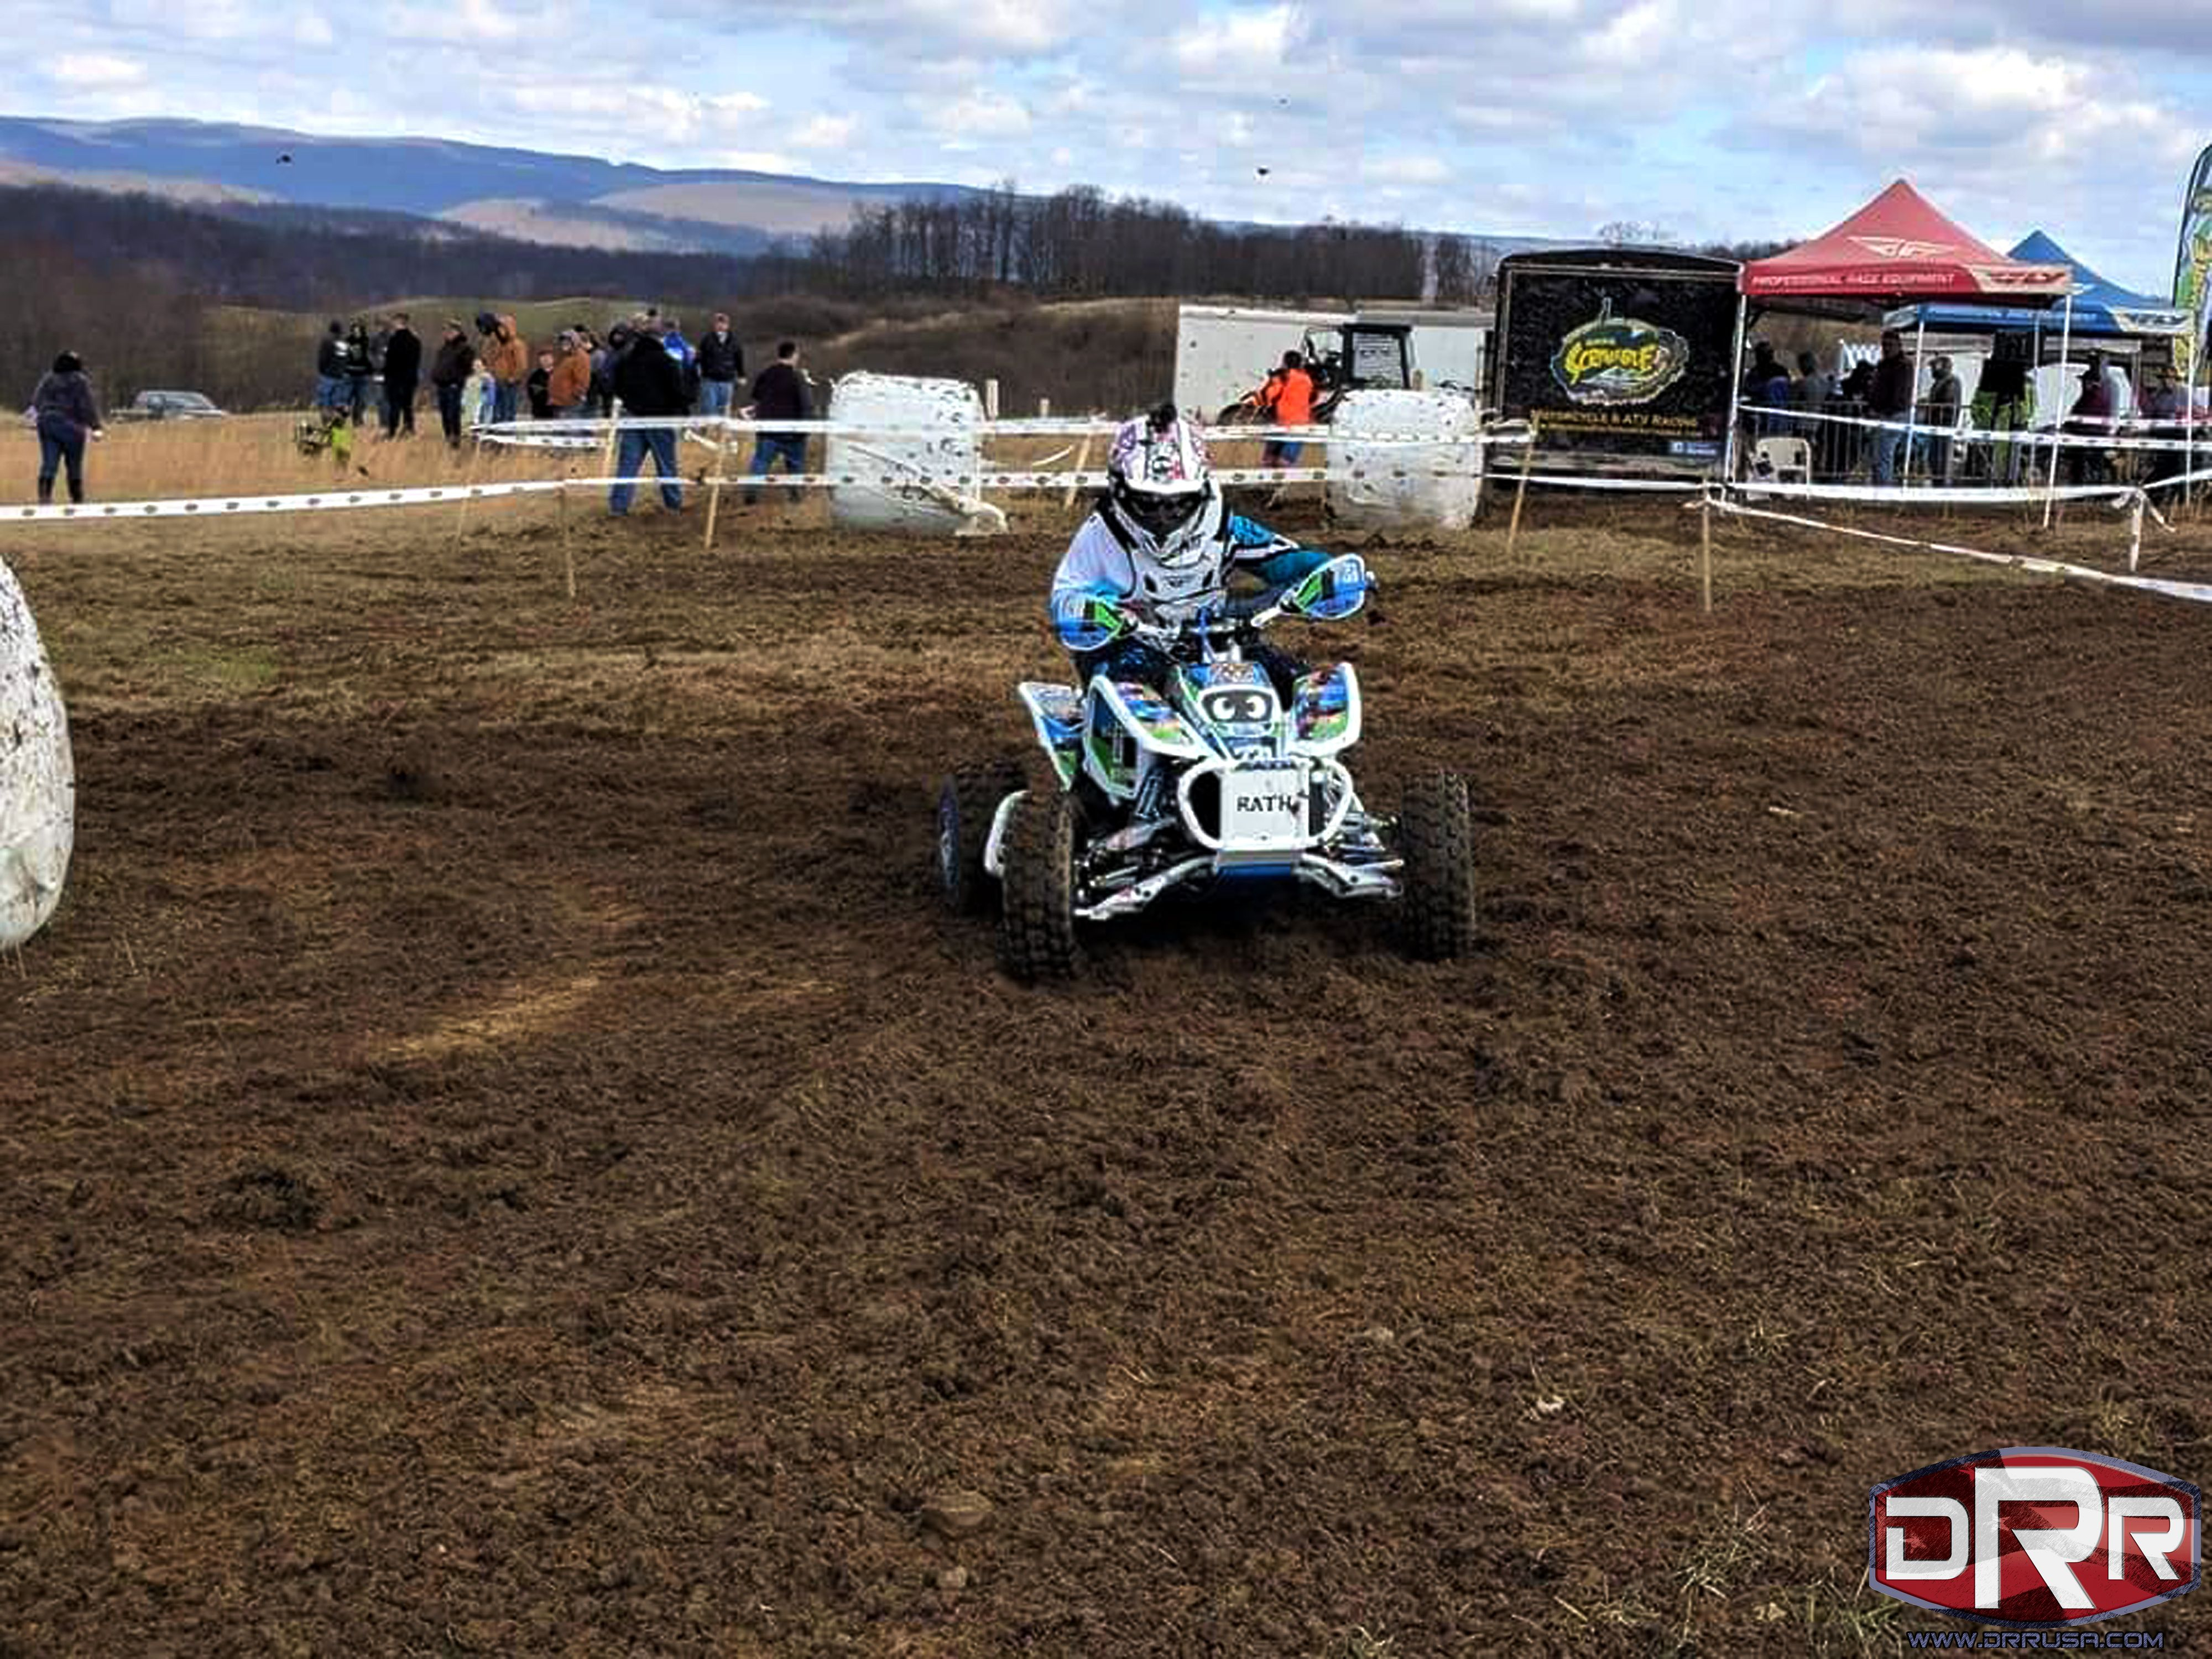 hight resolution of emily hanlin at the mountain state harescramble on 3 31 18 riding her drr drx 90cc atv